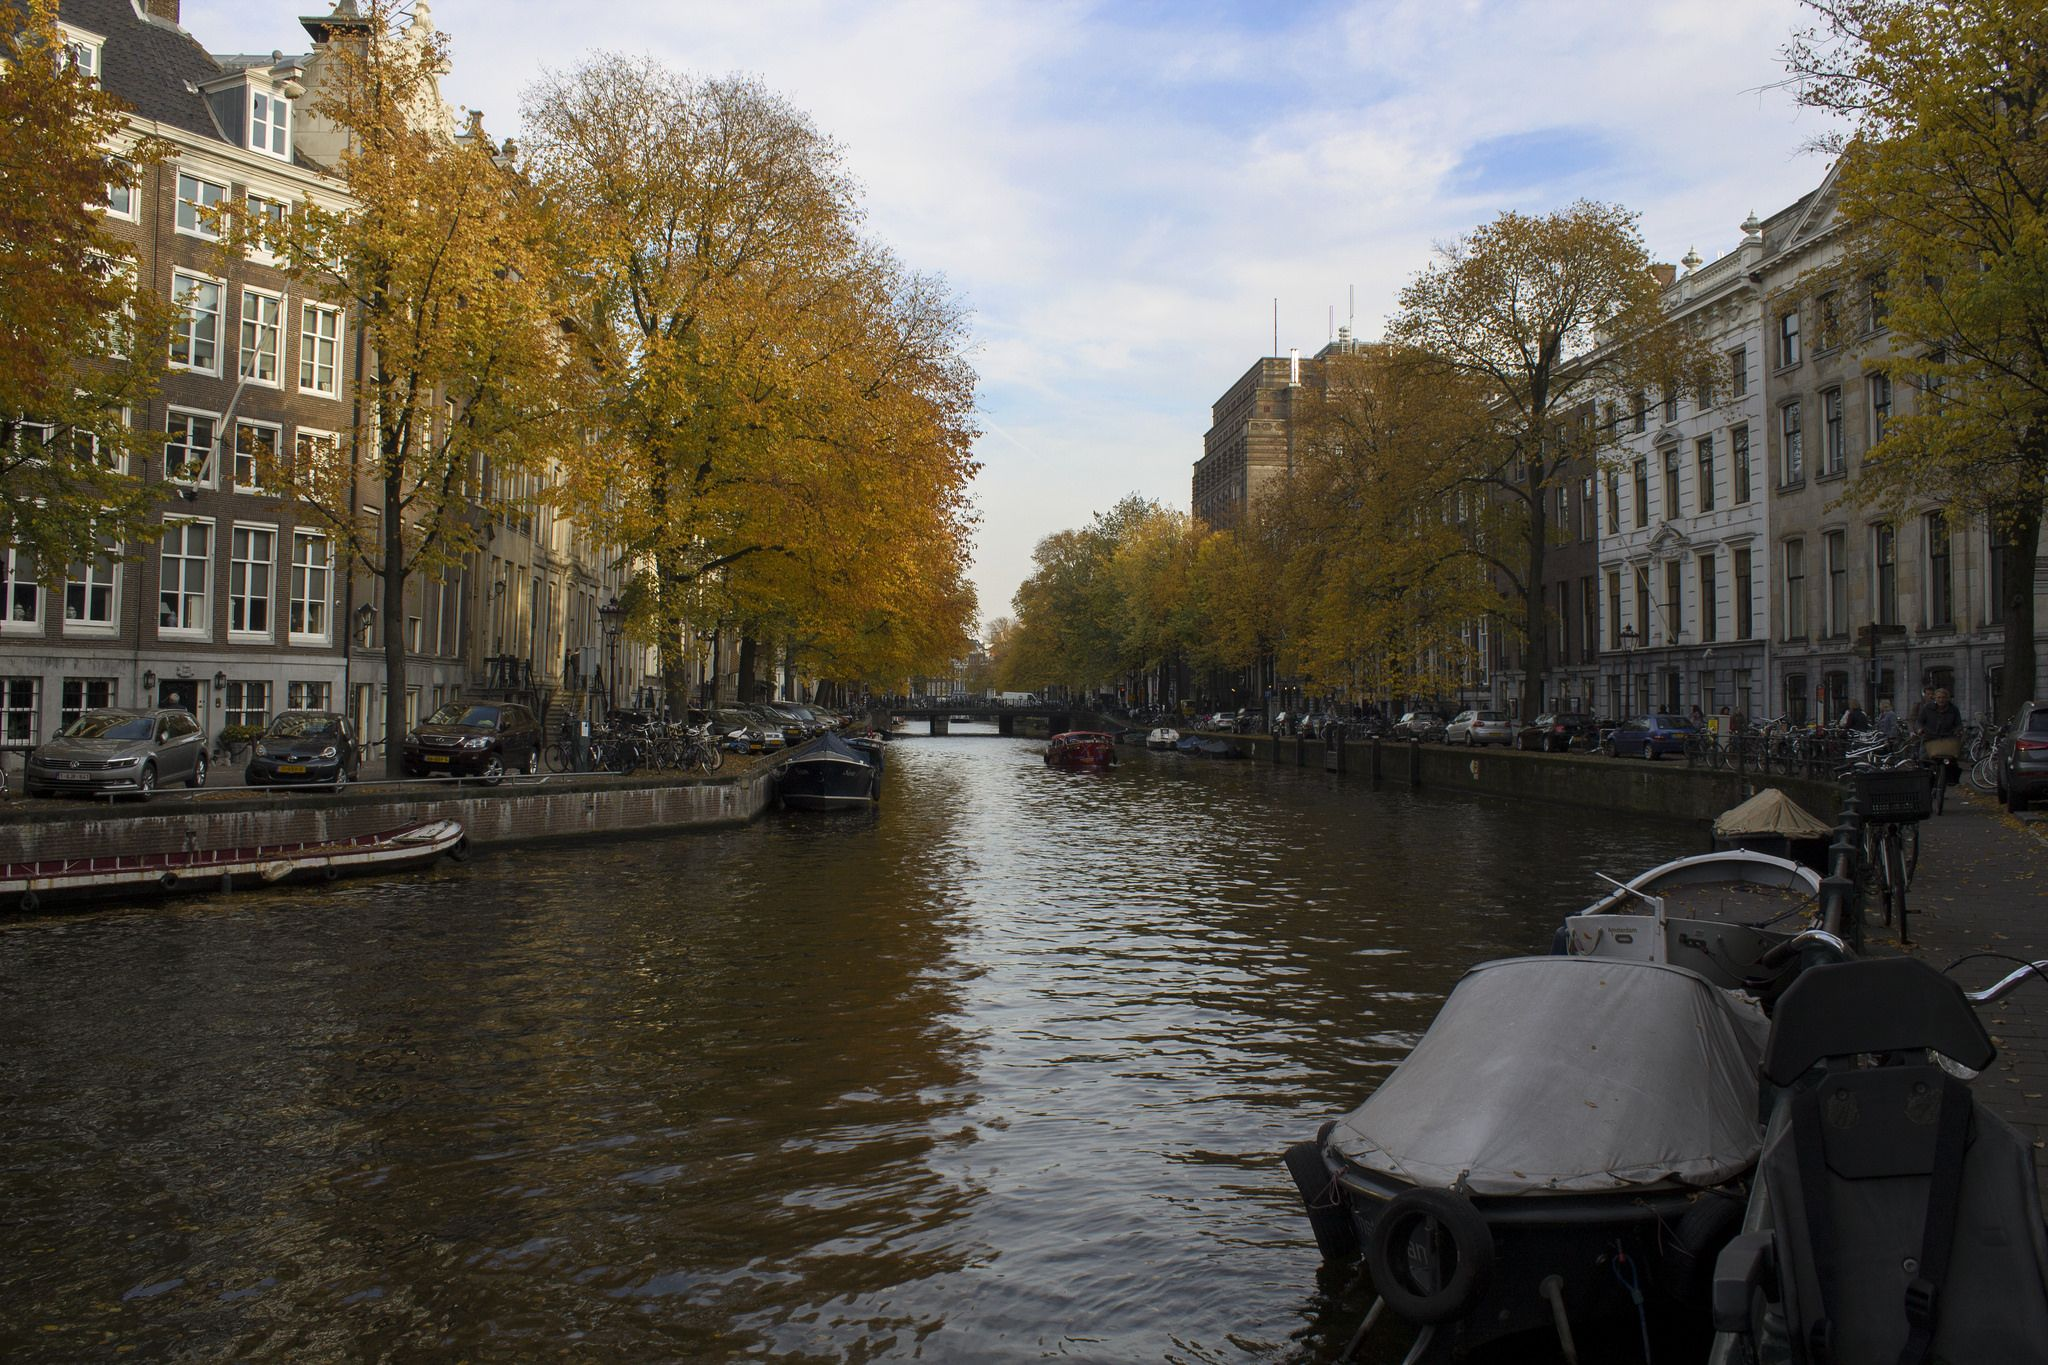 https://flic.kr/p/An9YMf | Amsterdam Herengracht